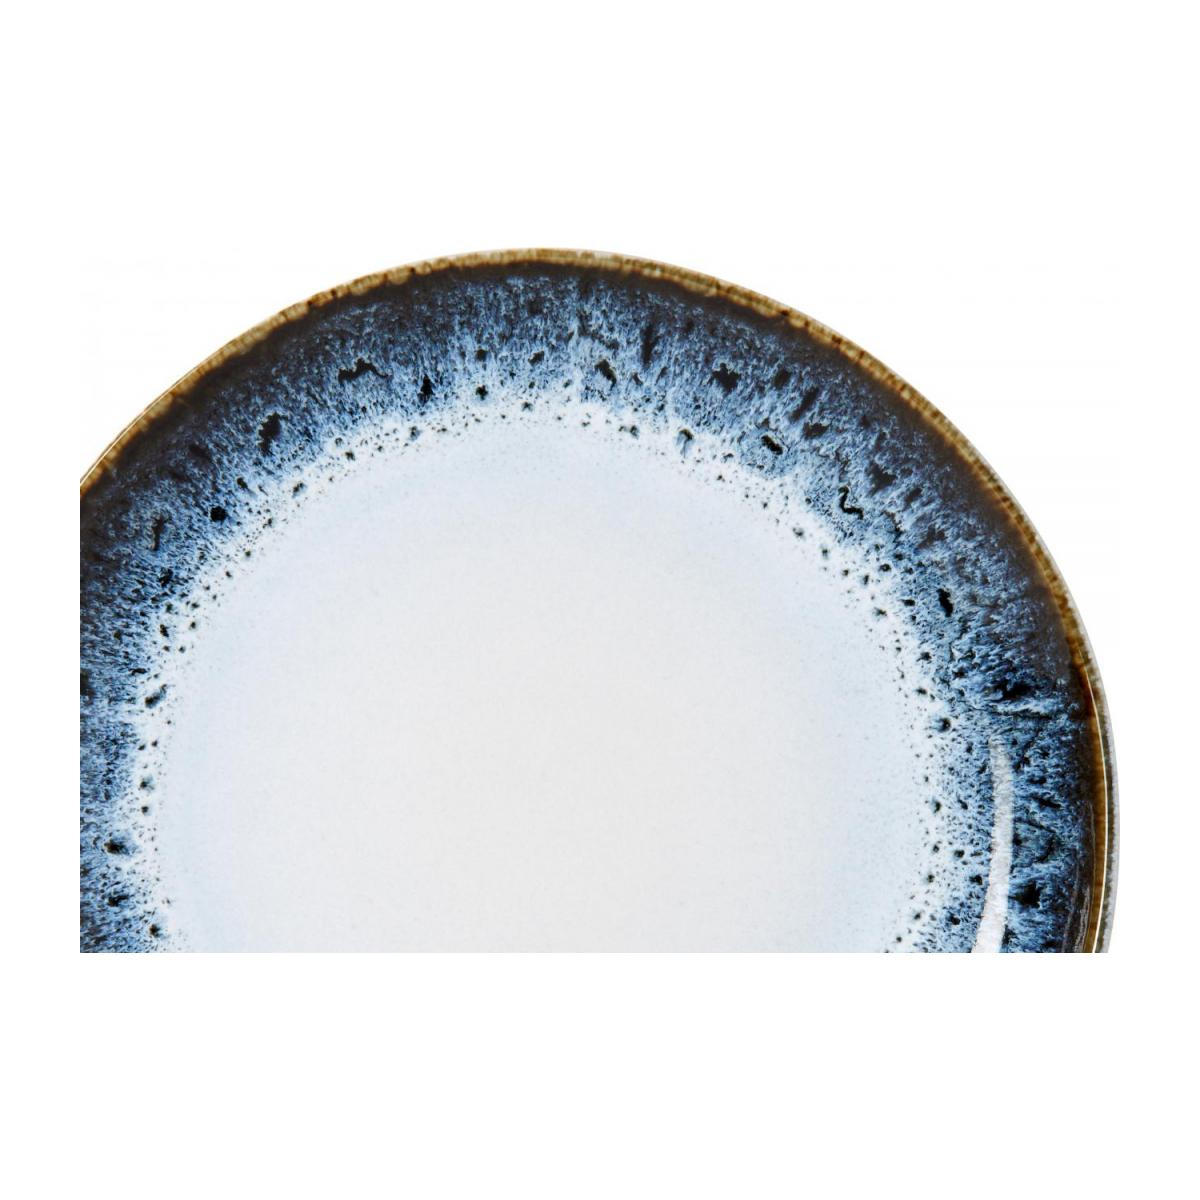 Dessert plate made of sandstone 21cm, white and black n°3